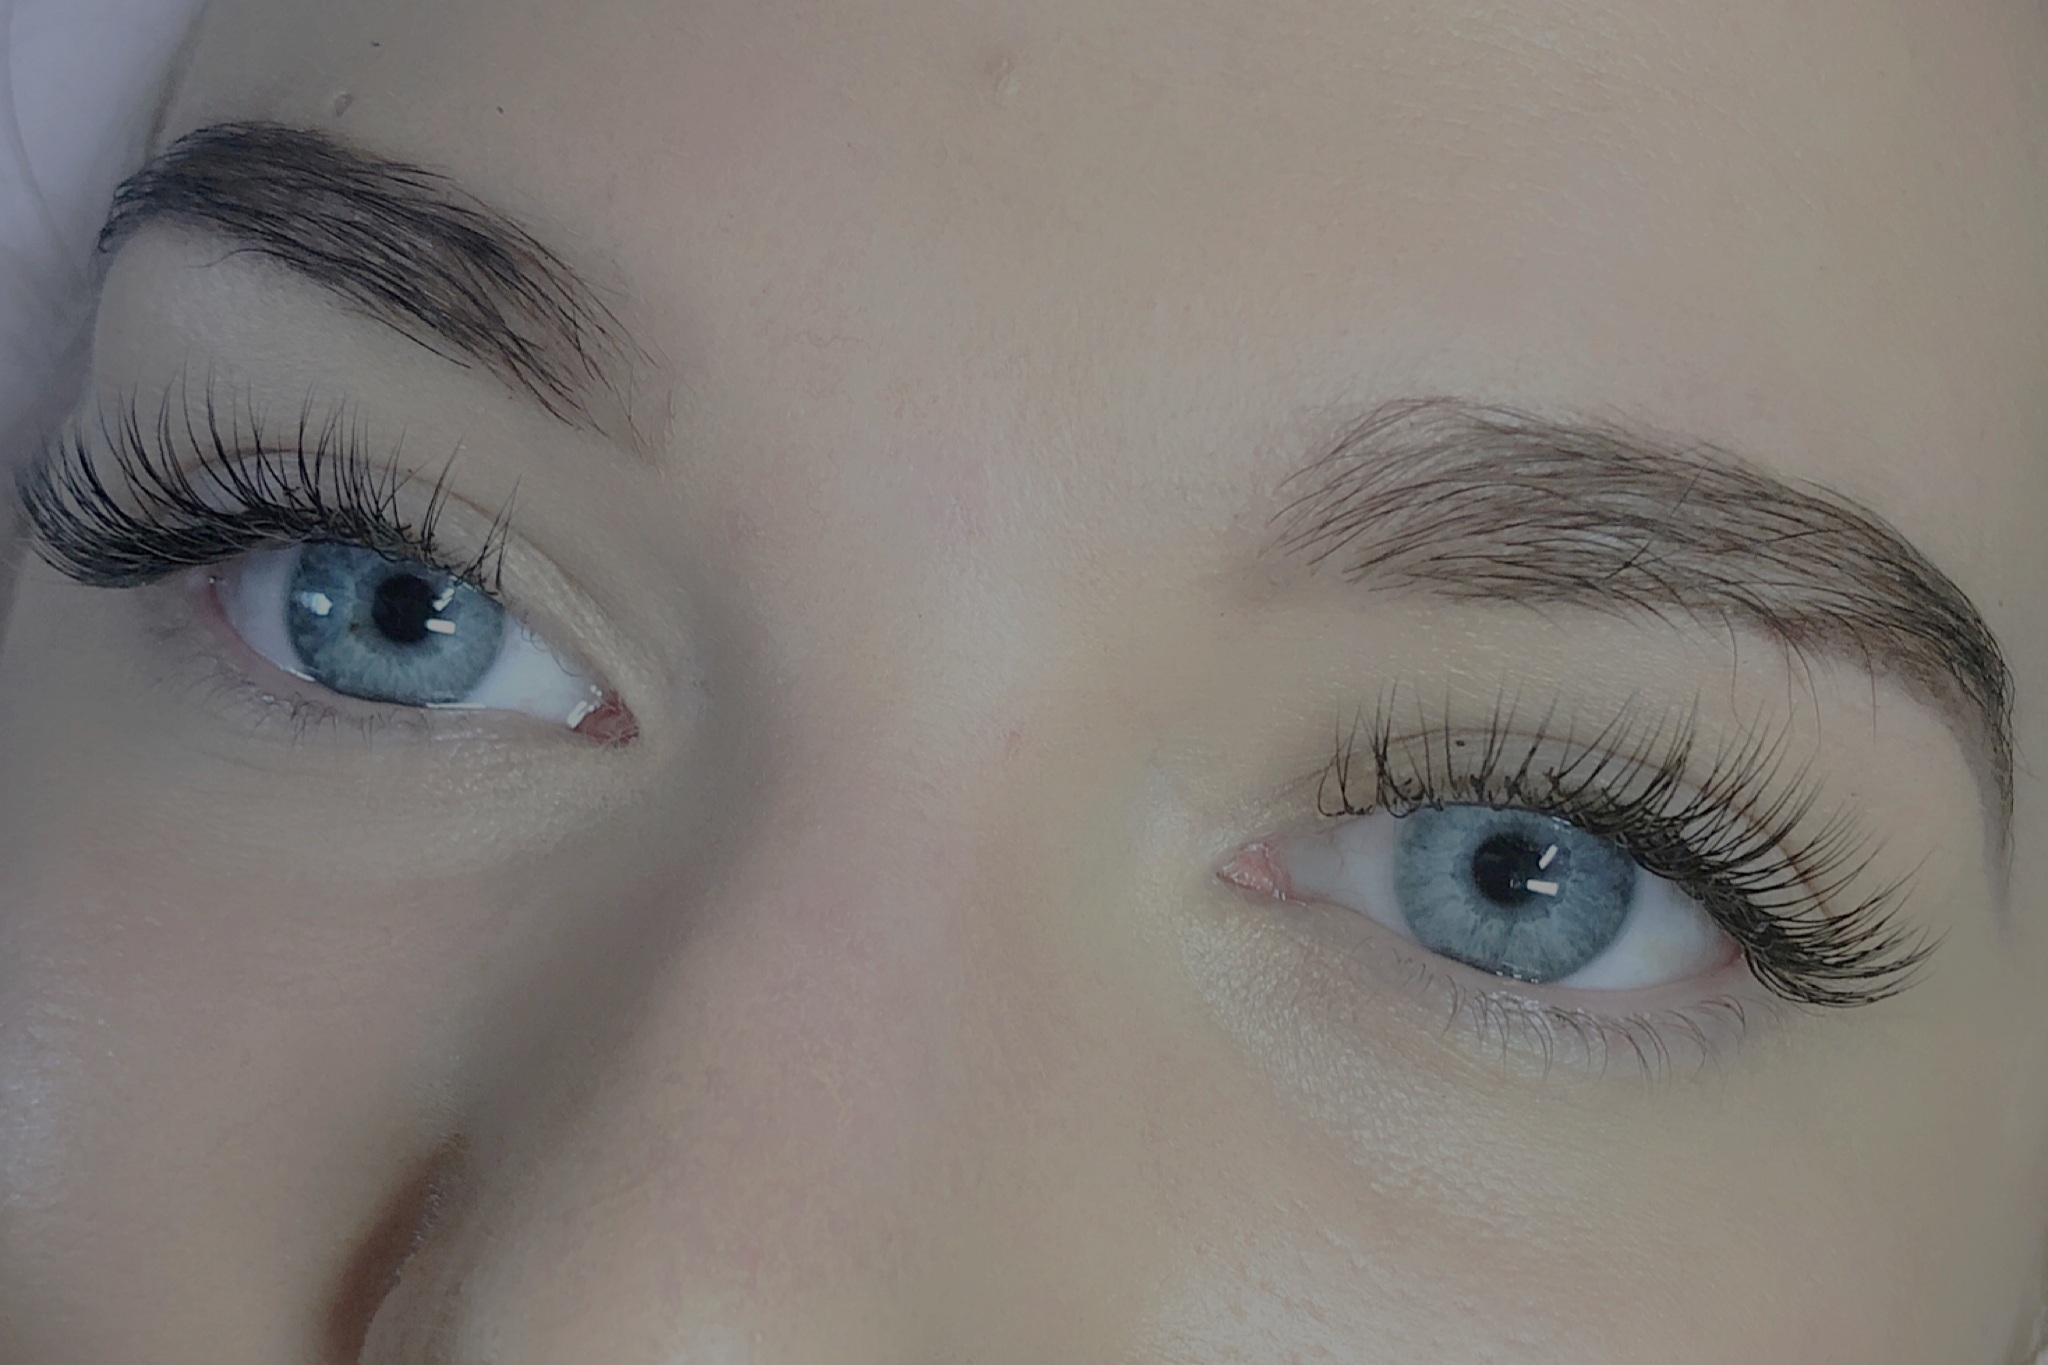 NATURALClassic Lash Extensions - Adding more length and colour to each of your natural lashes with custom eye shape, your natural lashes and personal preference. 149Book Online Now